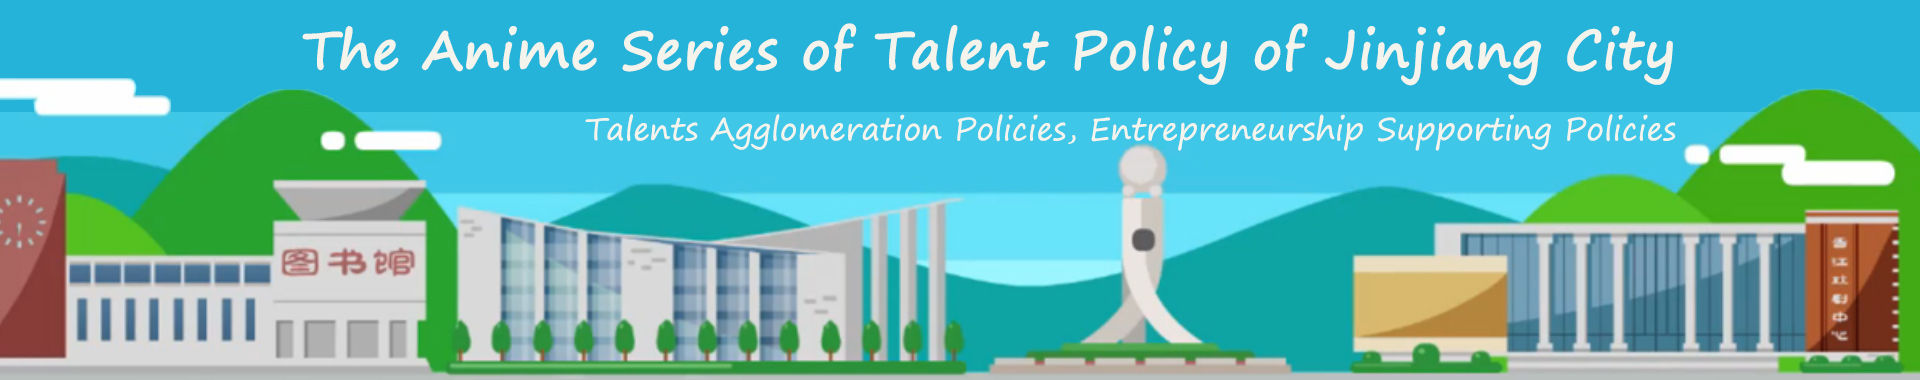 Talents Agglomeration Policies, Entrepreneurship Supporting Policies